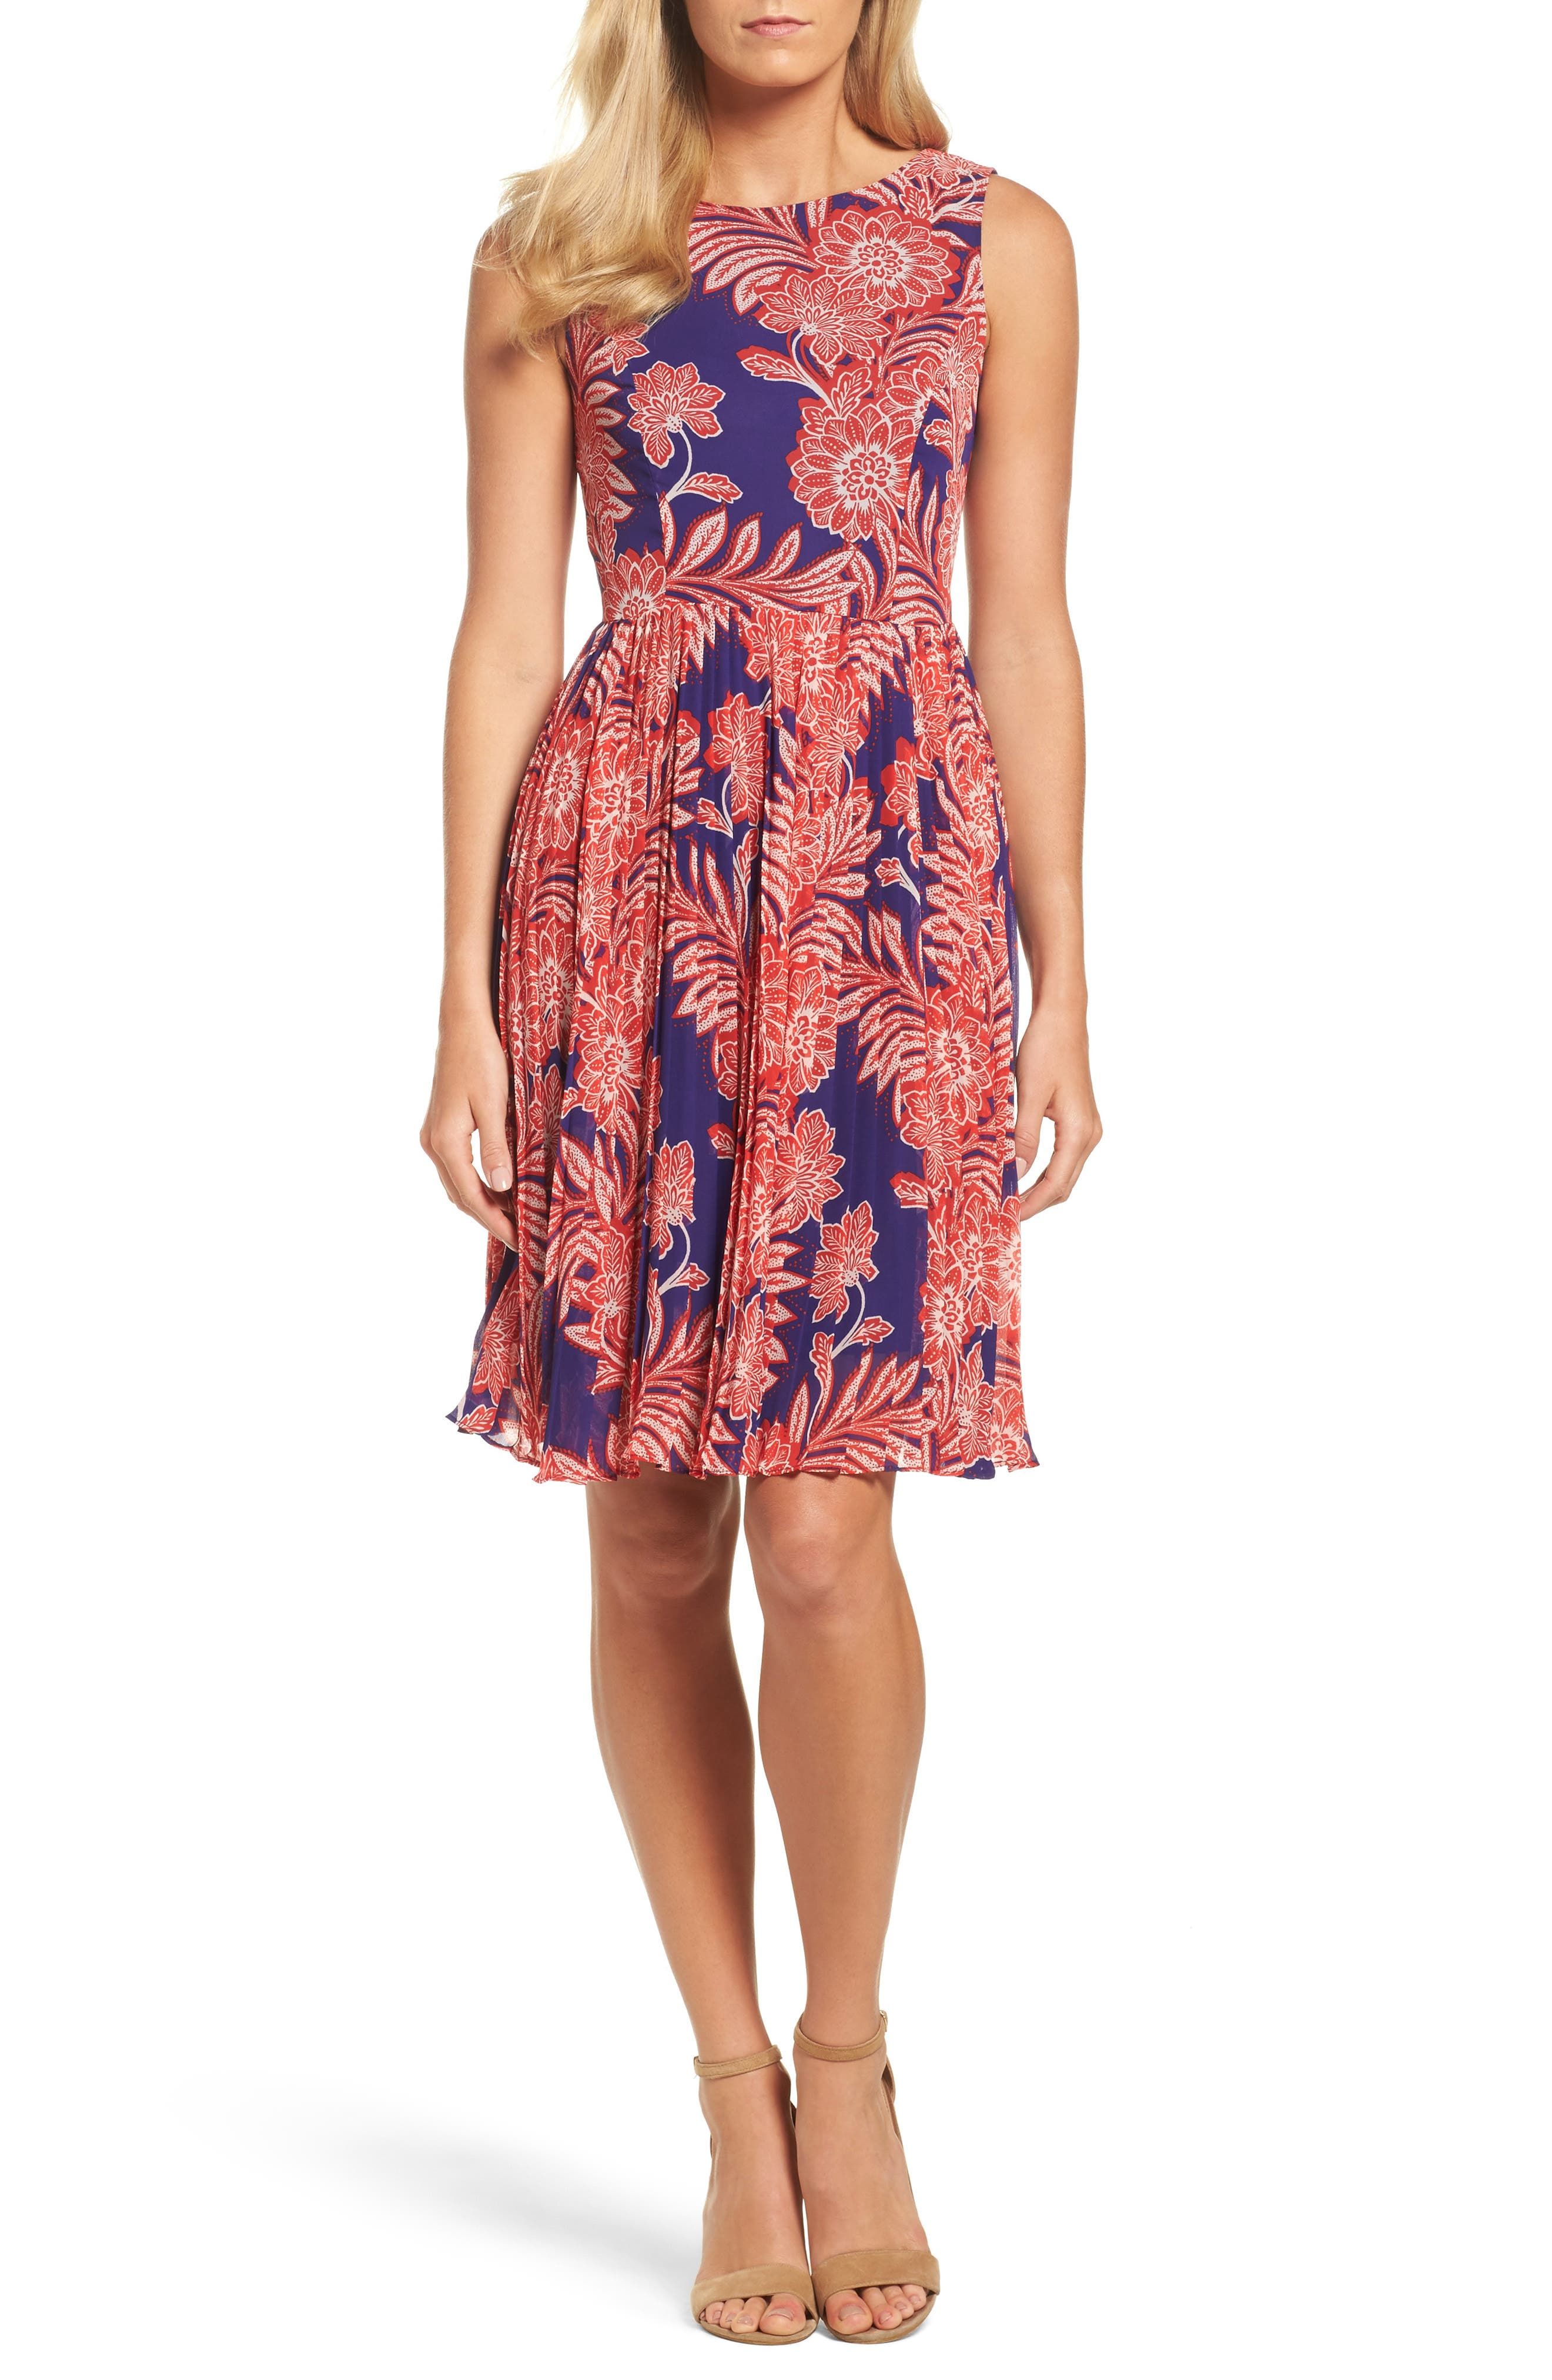 Adrianna Papell Chiffon Fit & Flare Dress (Regular & Petite)